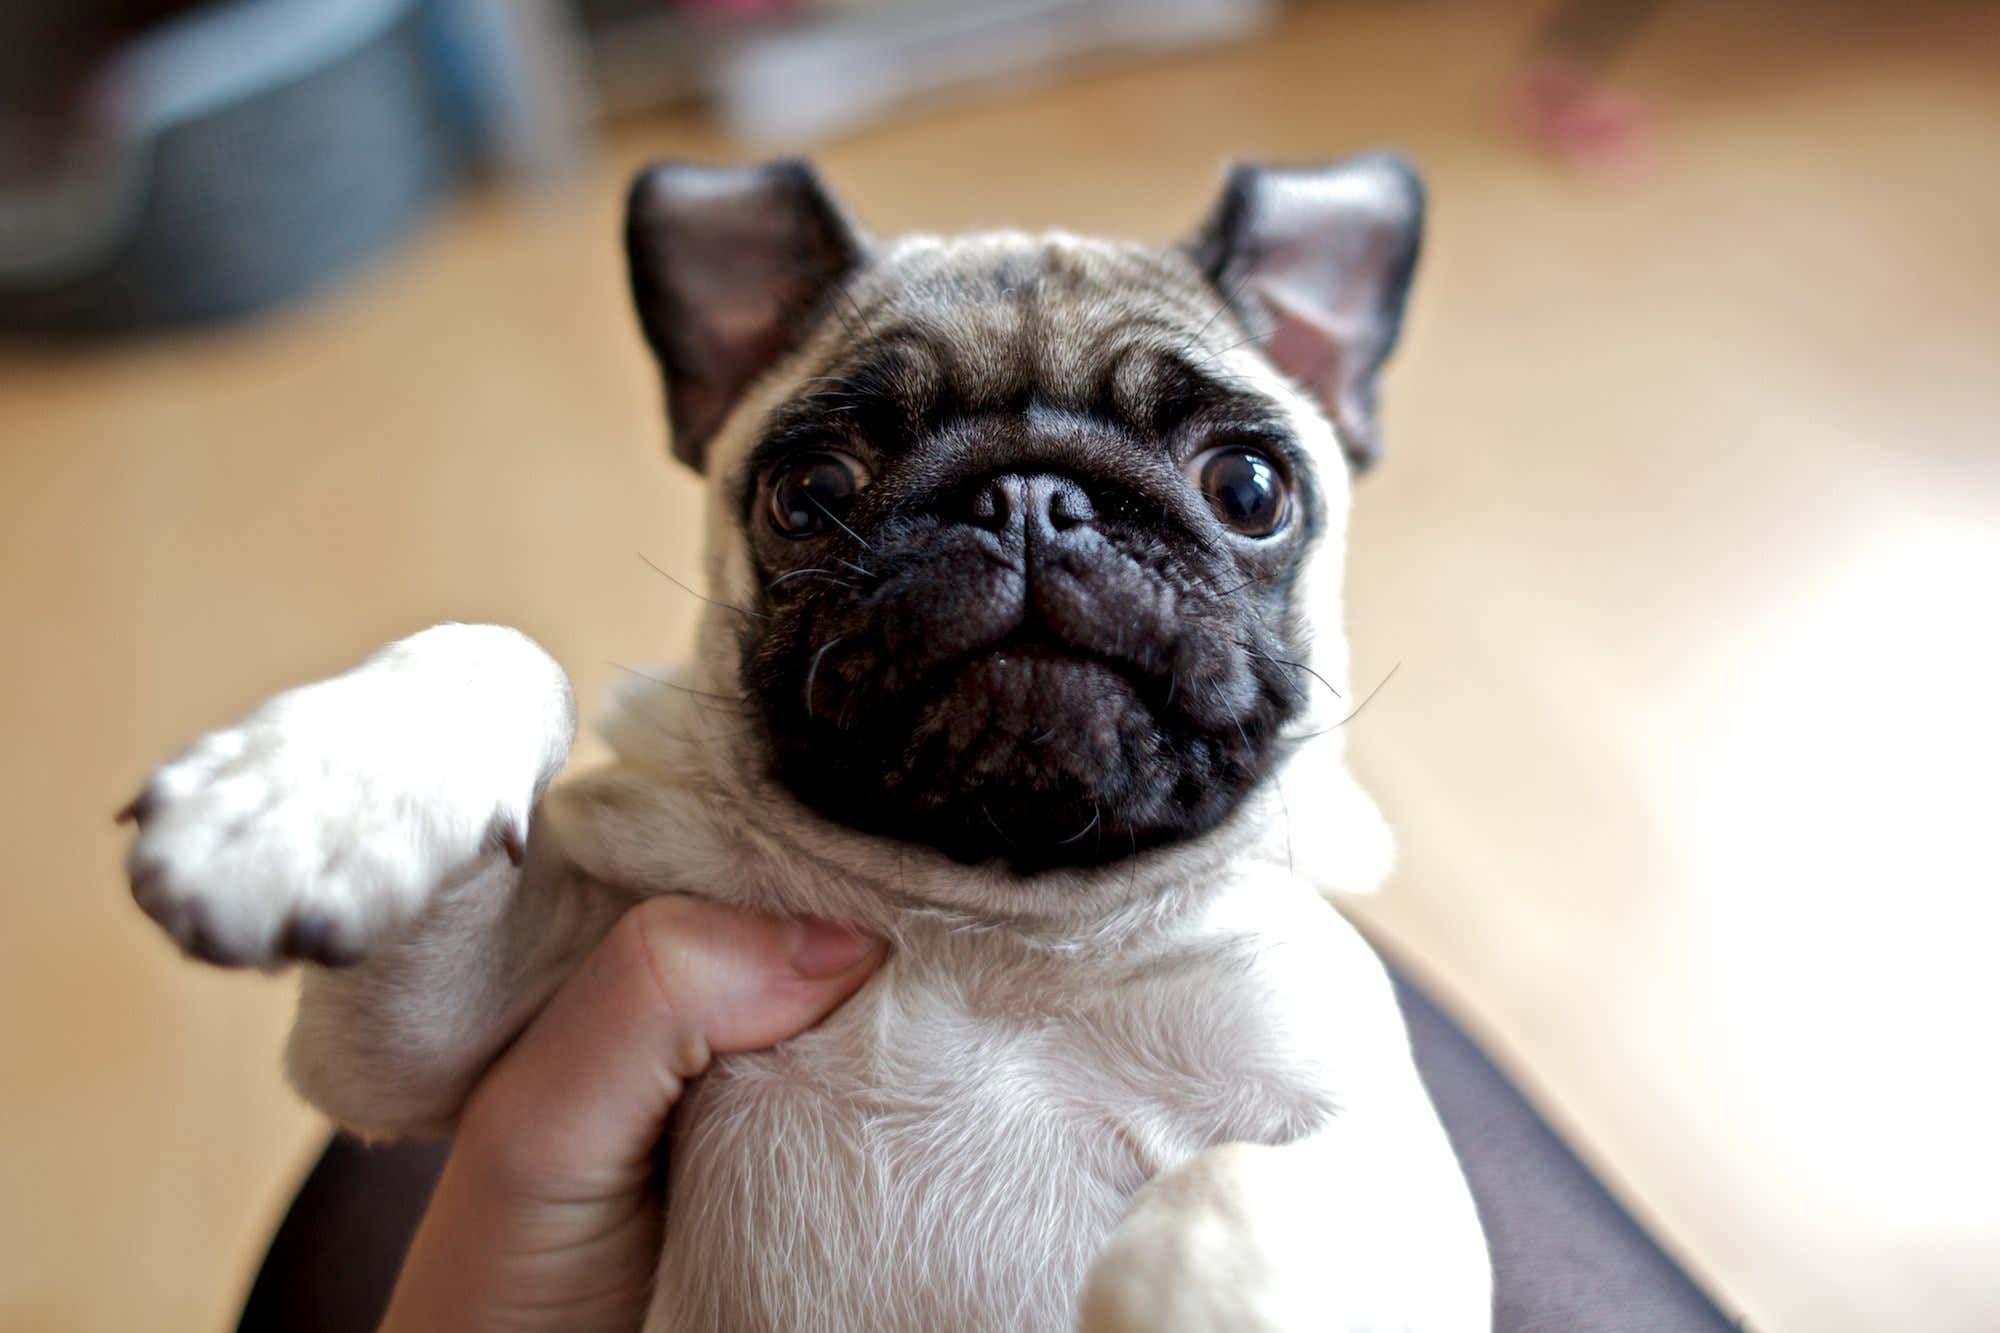 an image of a pug puppy set to compression level of 60 out of 100